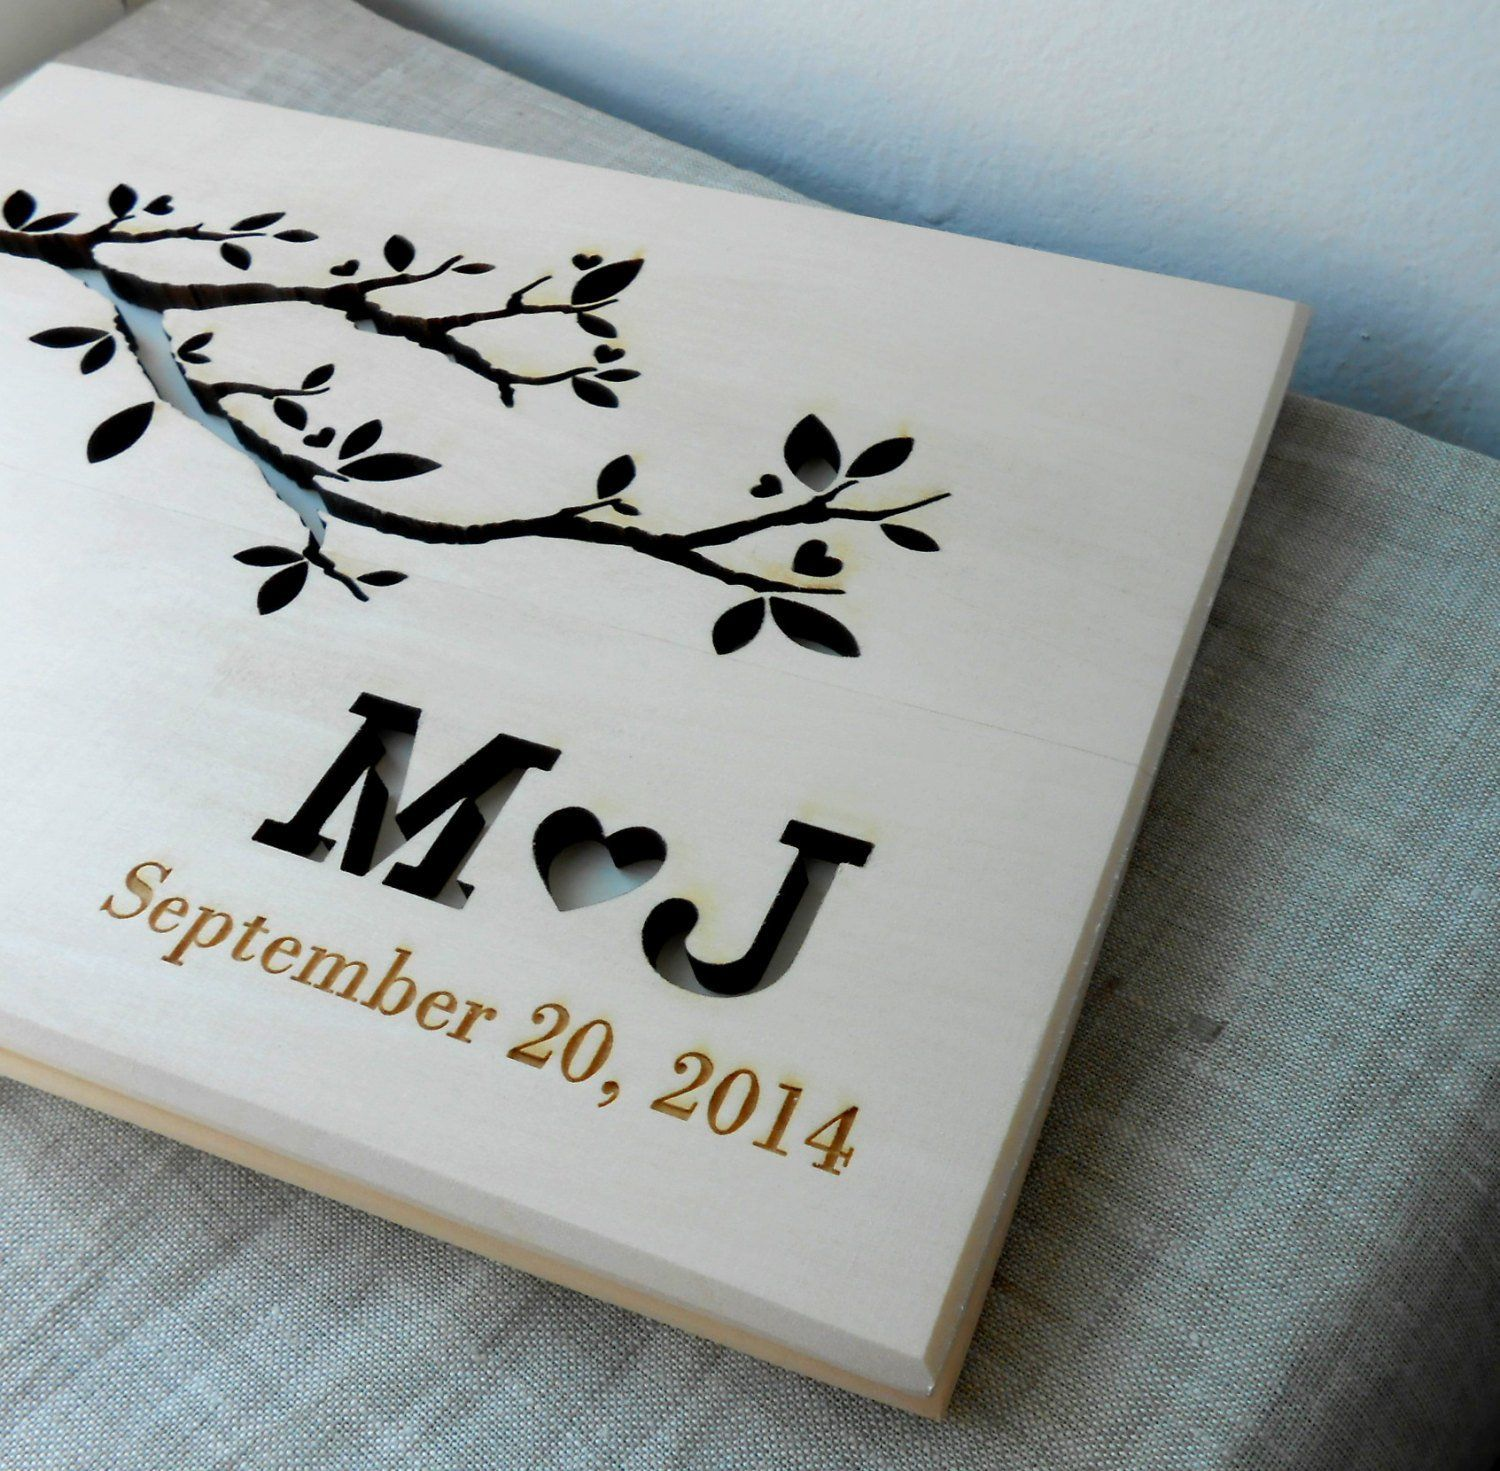 "Wedding guest book, rustic guest book, wooden wedding guest book album, personalized custom laser engraved guest book. Wooden wedding guest book. Rustic wedding sign in album. Size: 5,75"" x 8,25"" (14,6 cm x 21 cm) A5. Contains 30 sheets of light tan 80g/m2 paper. You can choose the color of the first page - the one you can see through the cut outs. Please write the names and date in the personalization section and also write the color of the first page.*************** Our production time..."